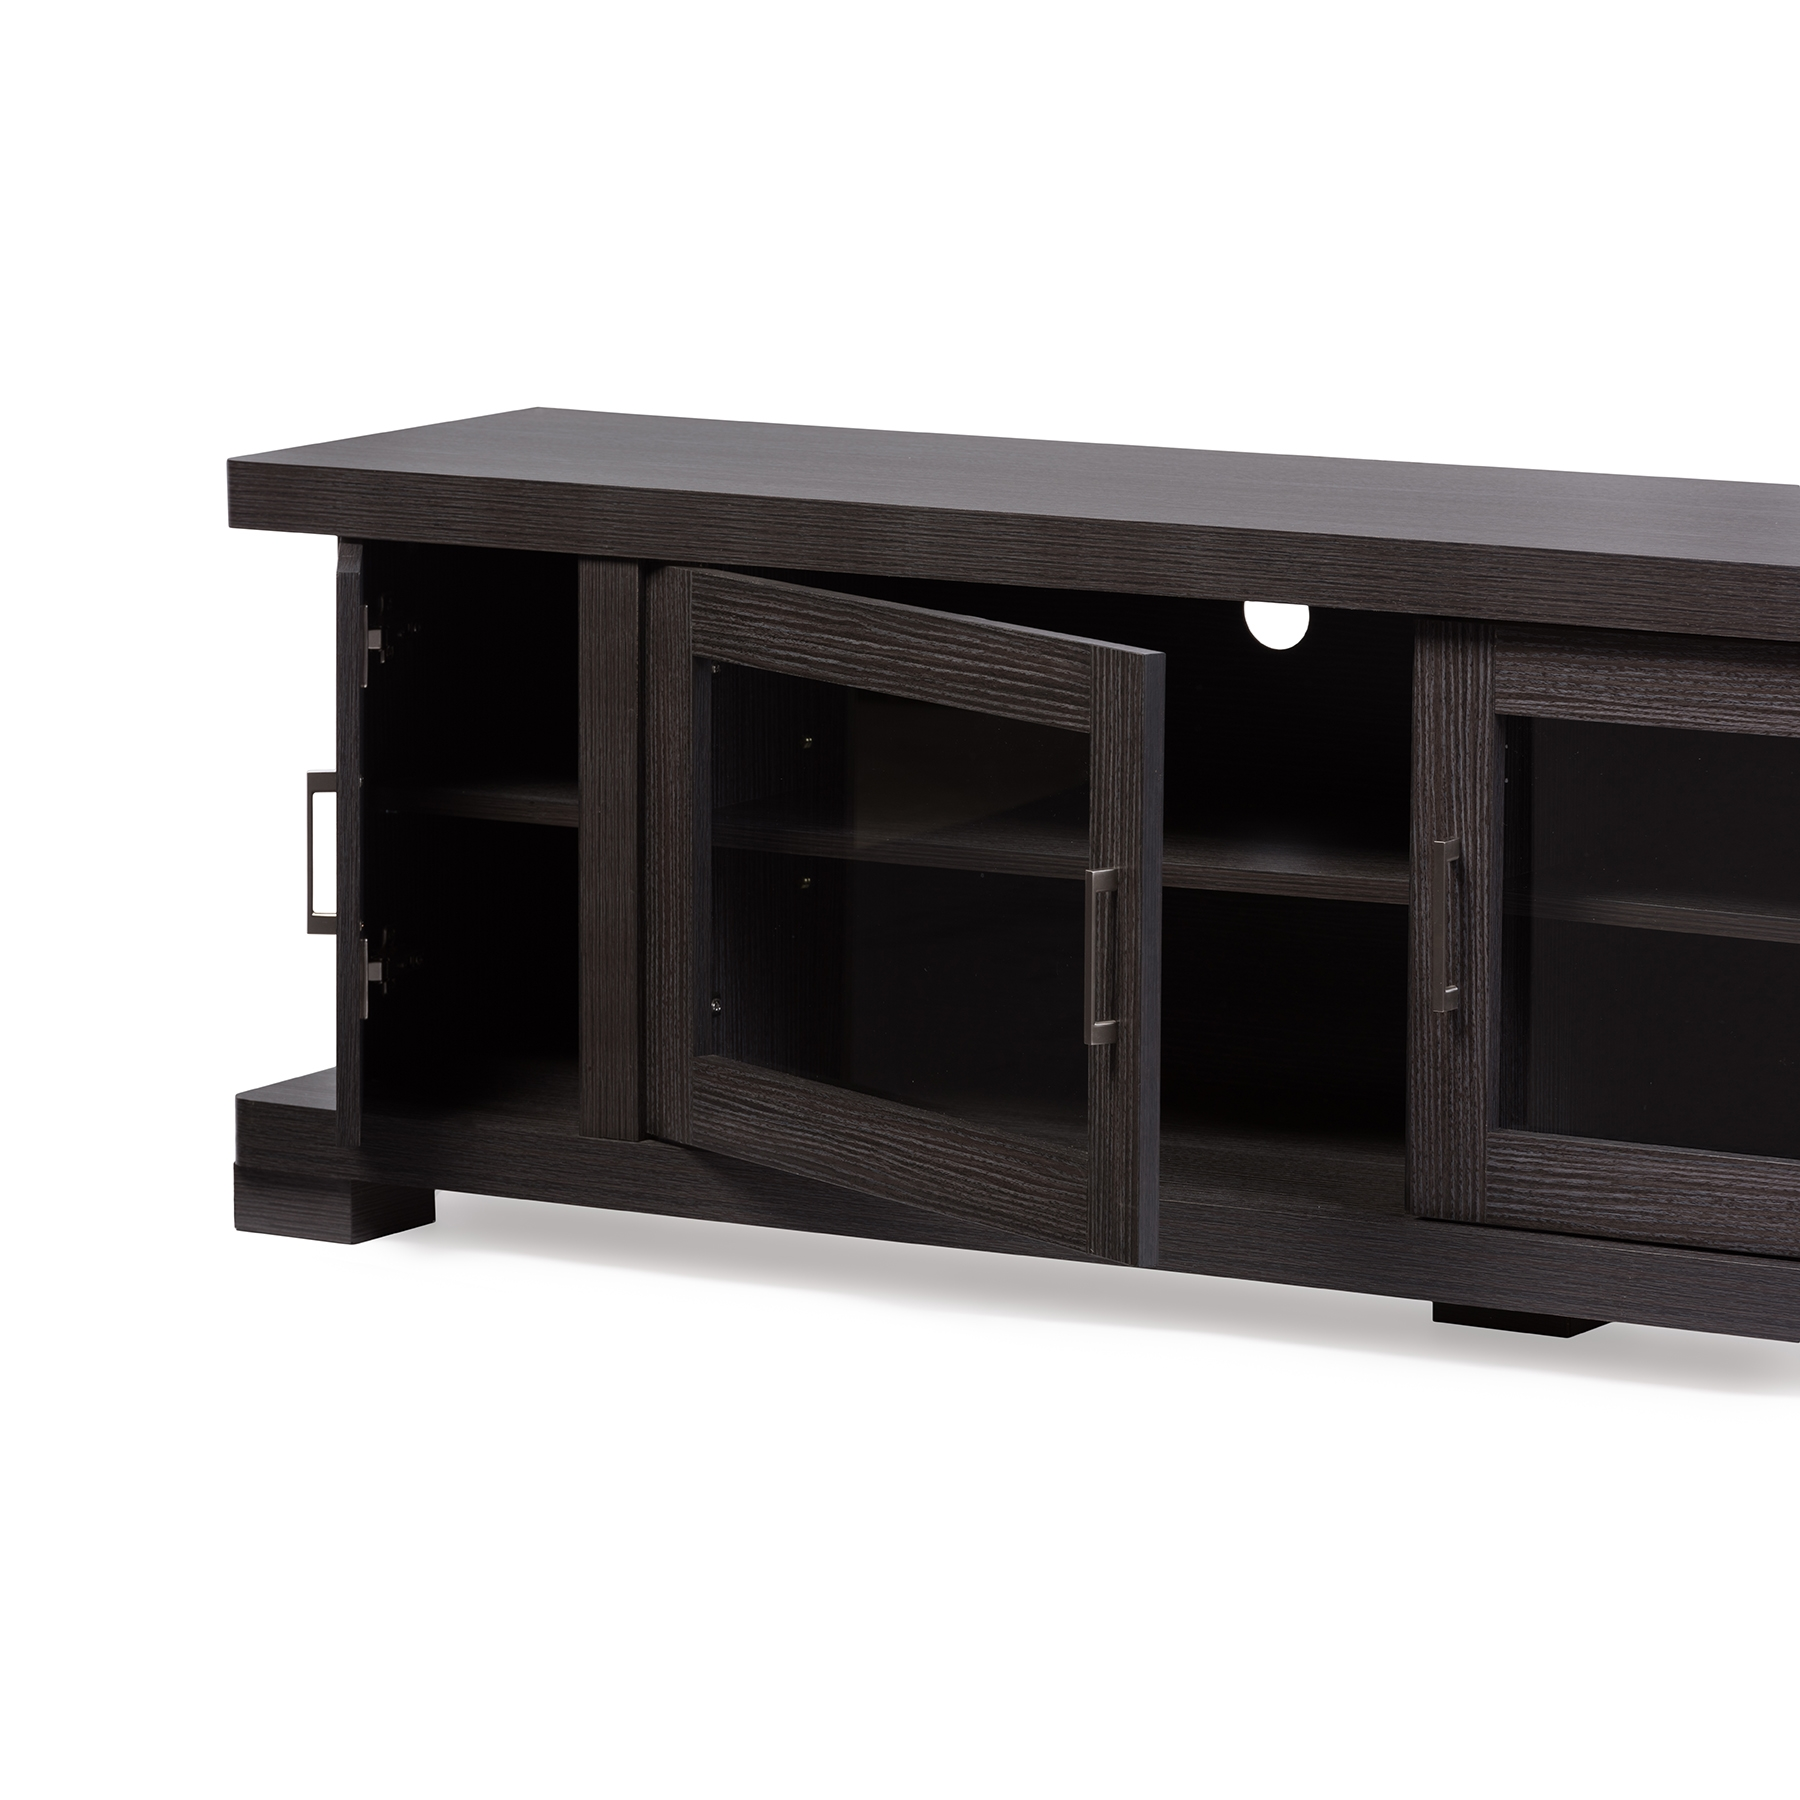 ... Baxton Studio Viveka 70 Inch Dark Brown Wood TV Cabinet With 2 Glass  Doors And ...